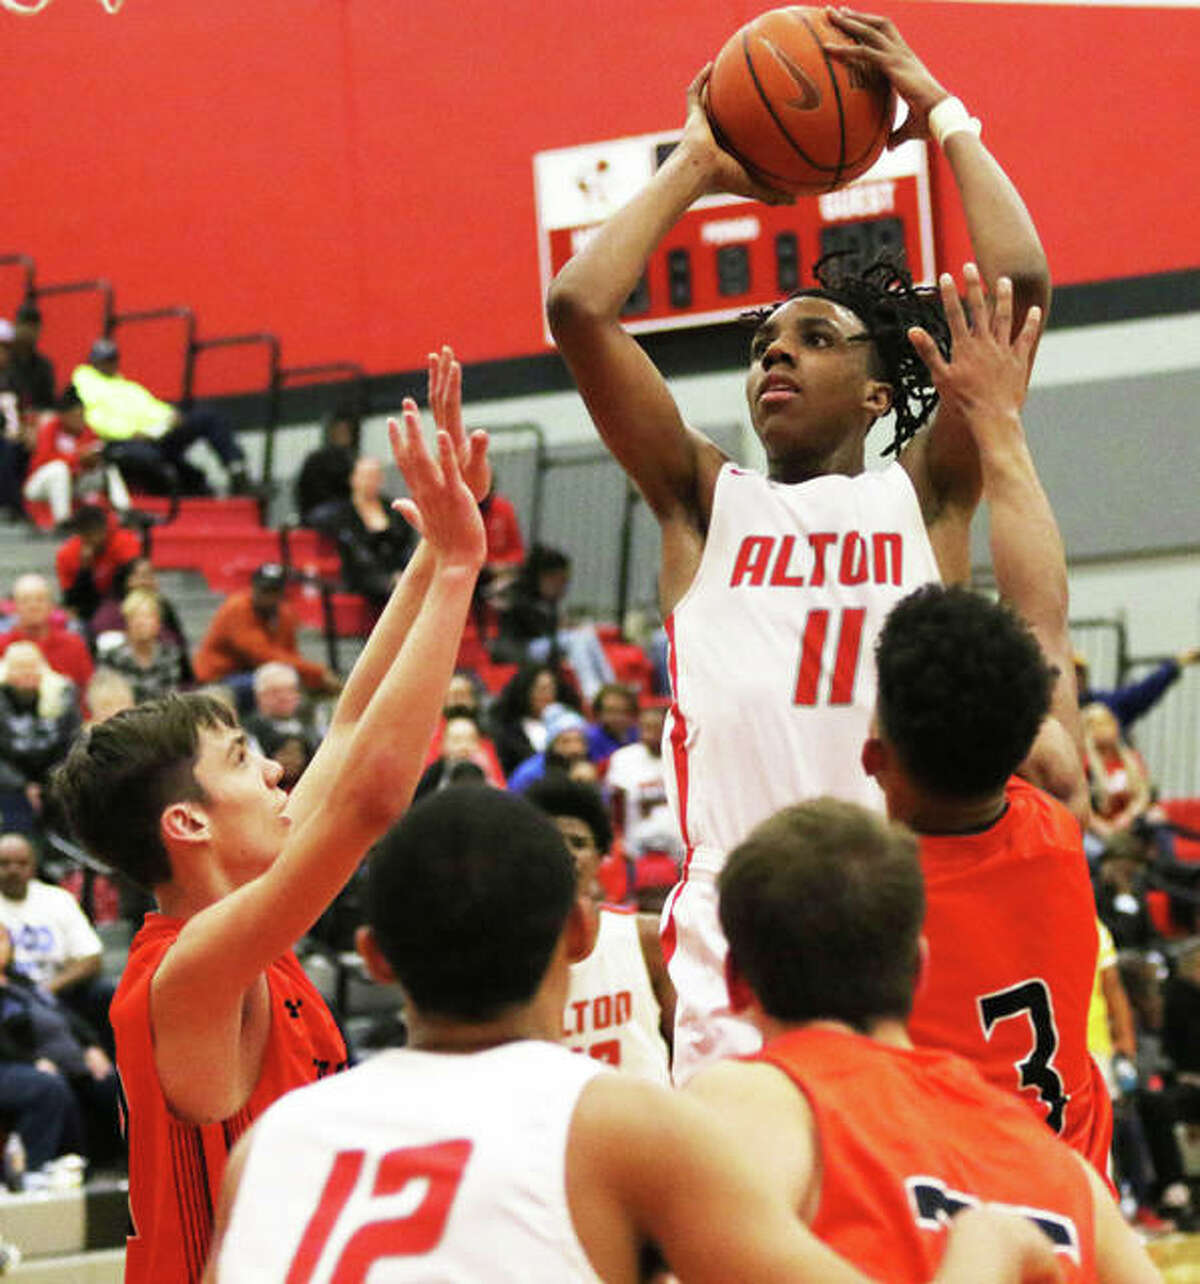 Alton's Donovan Clay (11) rises up in the lane for a shot over Edwardsville defenders during the Redbirds' Southwestern Conference victory on Tuesday at Alton High in Godfrey. The Redbirds were in Galesburg on Saturday and Clay scored 23 points in a shootout win over Rock Island.